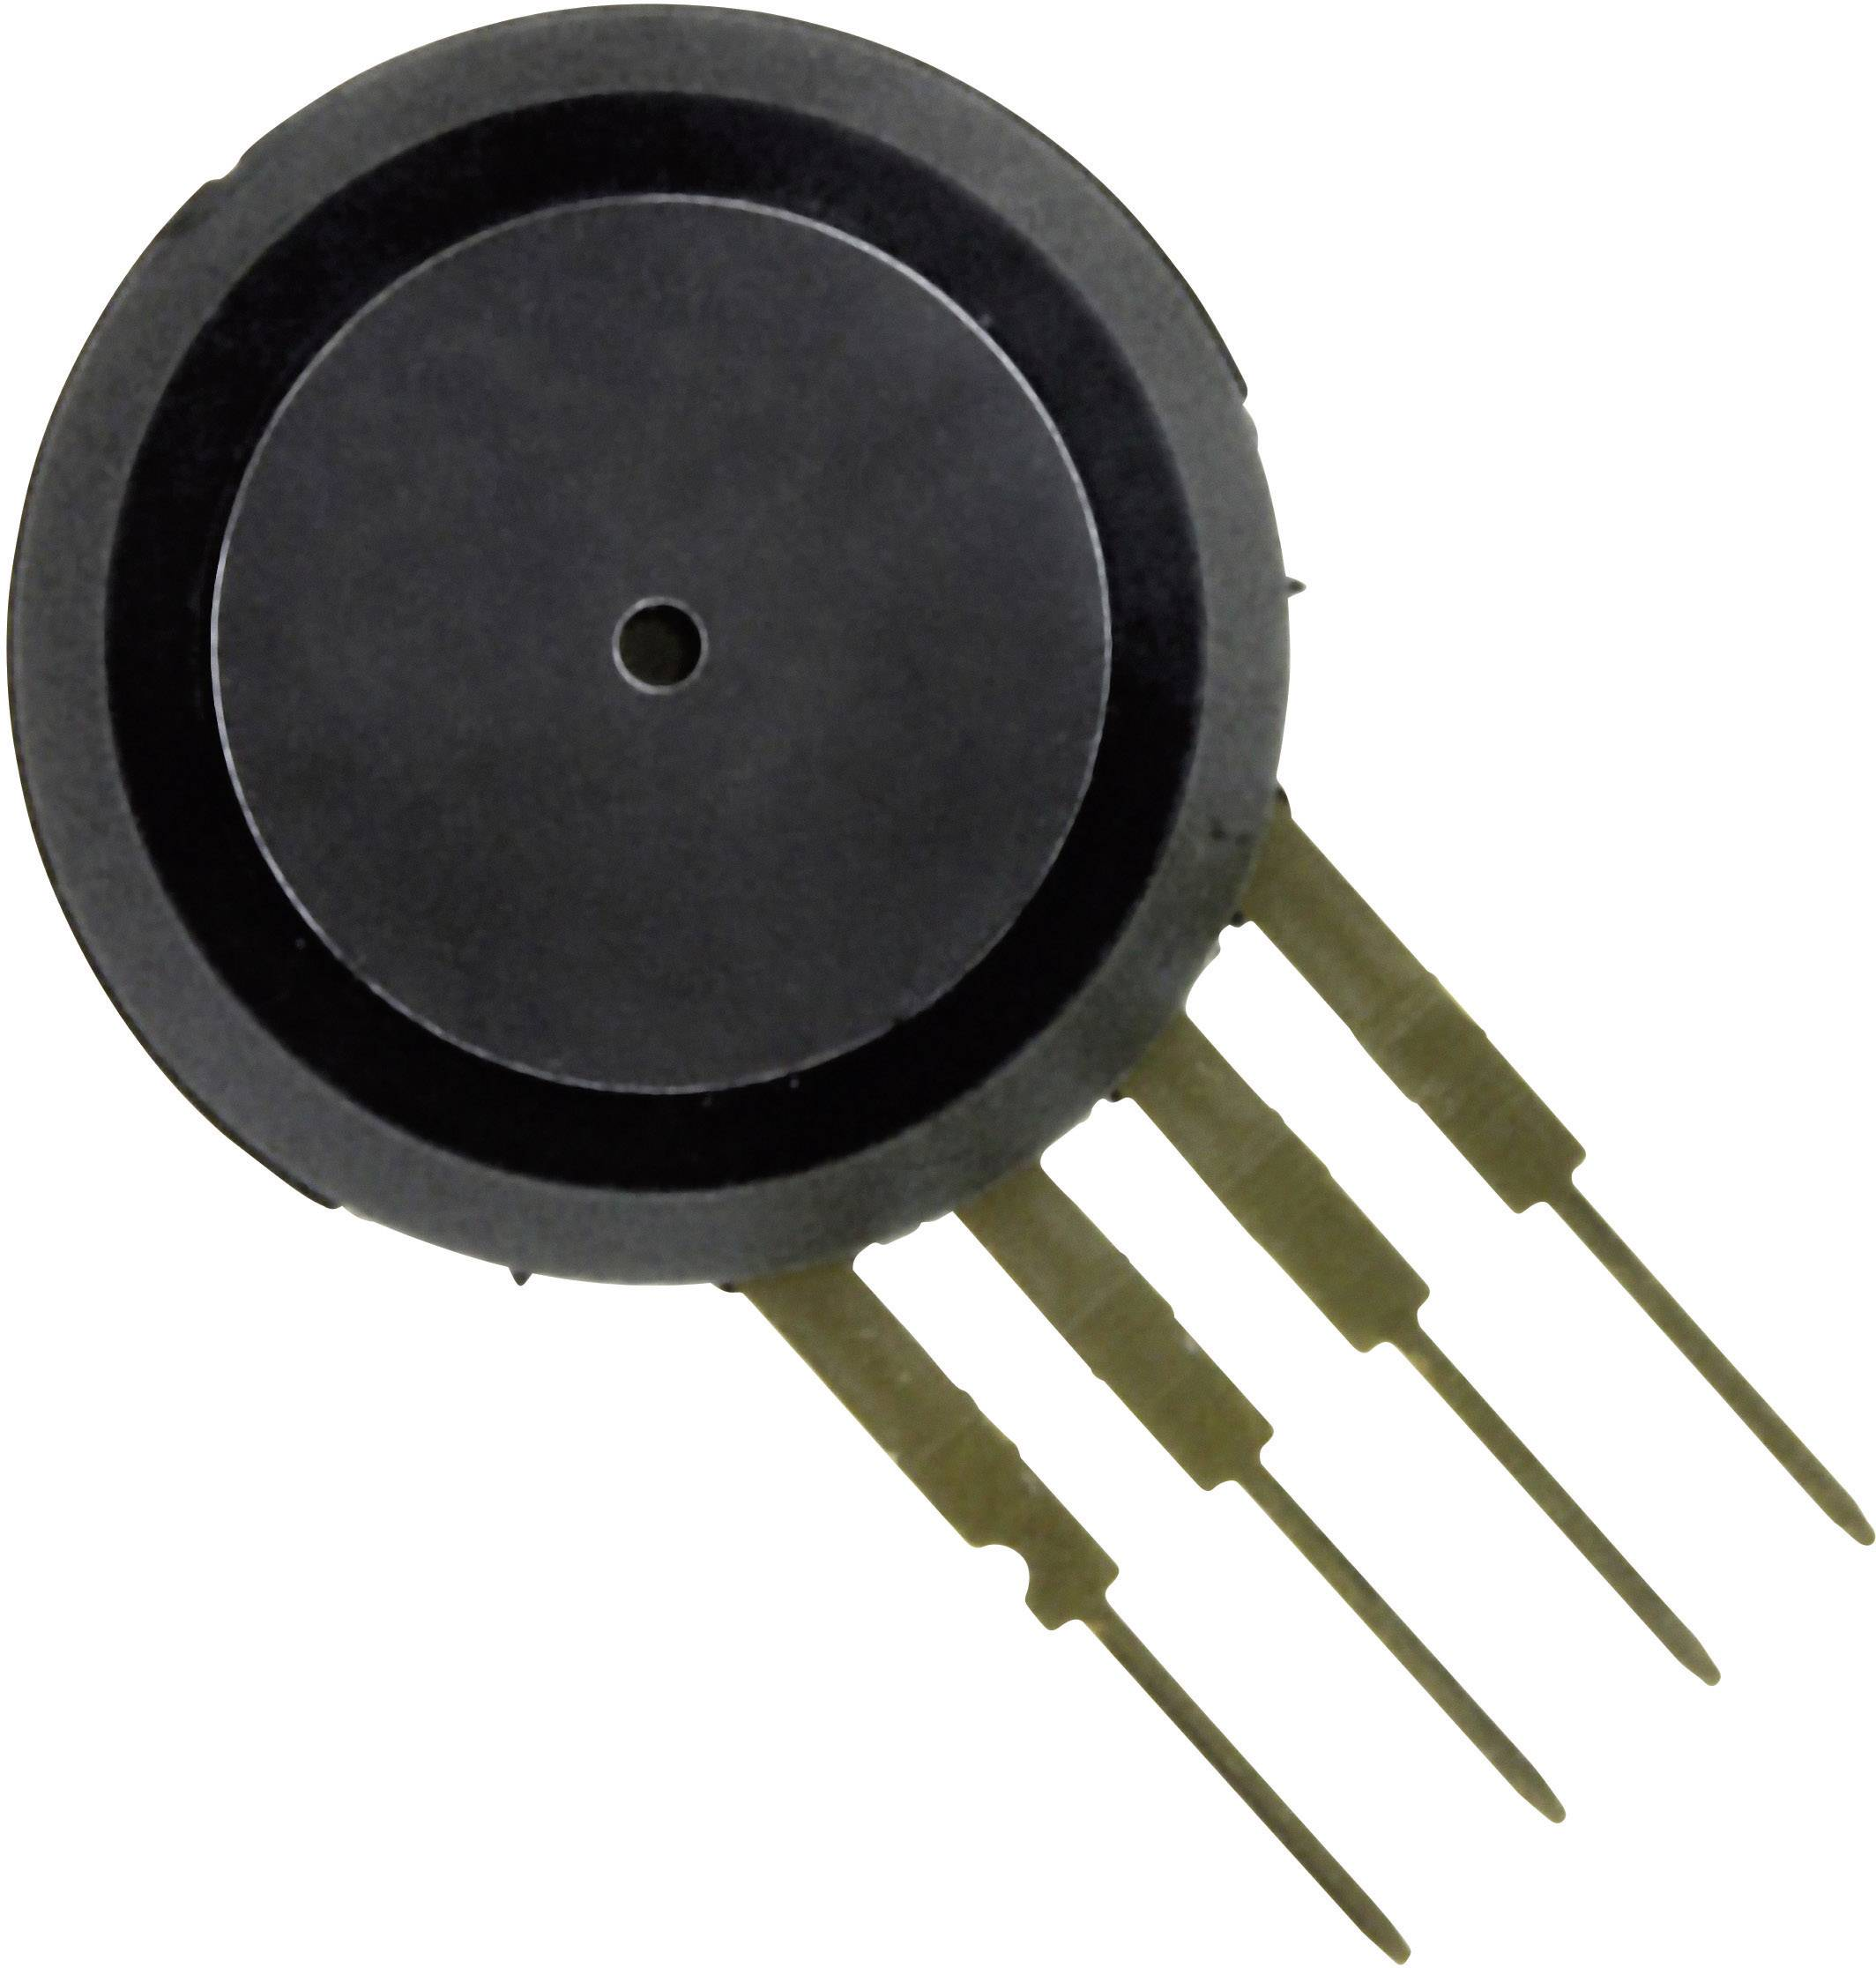 Senzor tlaku NXP Semiconductors MPX10D, 0 kPa až 10 kPa, do DPS